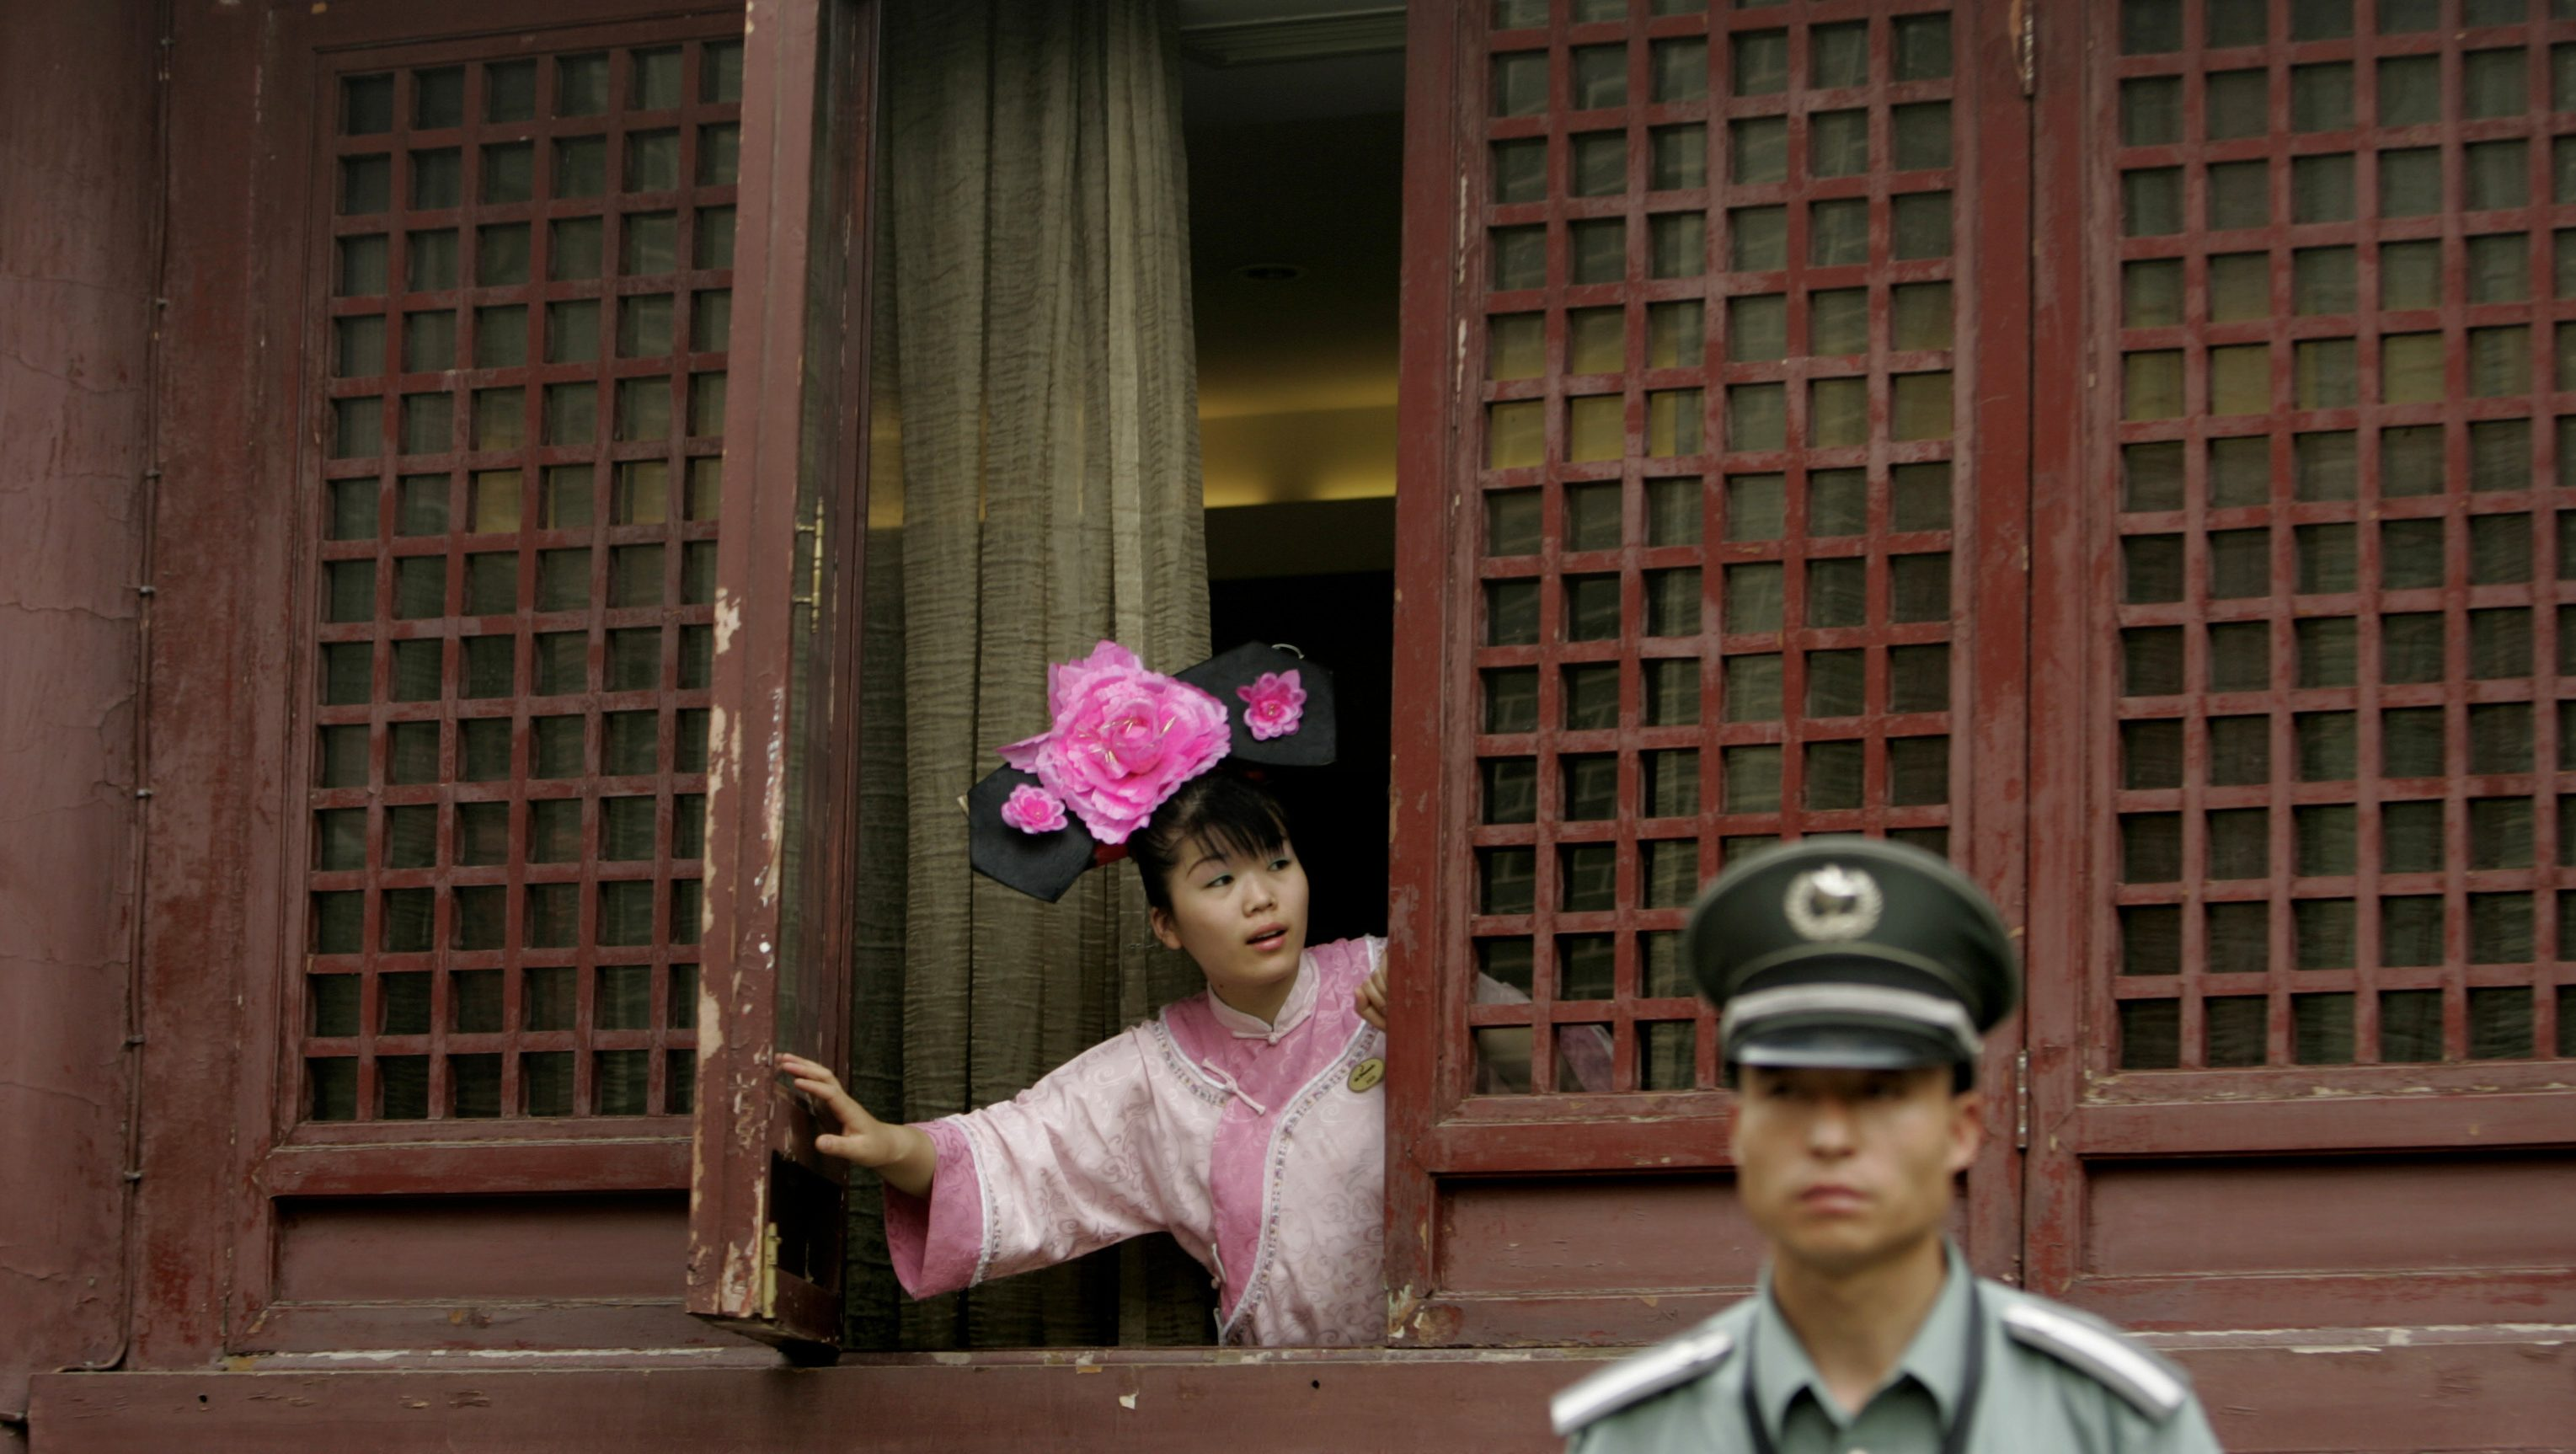 A waitress, dressed as a Qing dynasty lady-in-waiting, looks out from a window as a security guard stands nearby at the Beijing Jun hotel in Beijing May 30, 2007. The courtyard hotel was built in Qing Dynasty-style architecture.